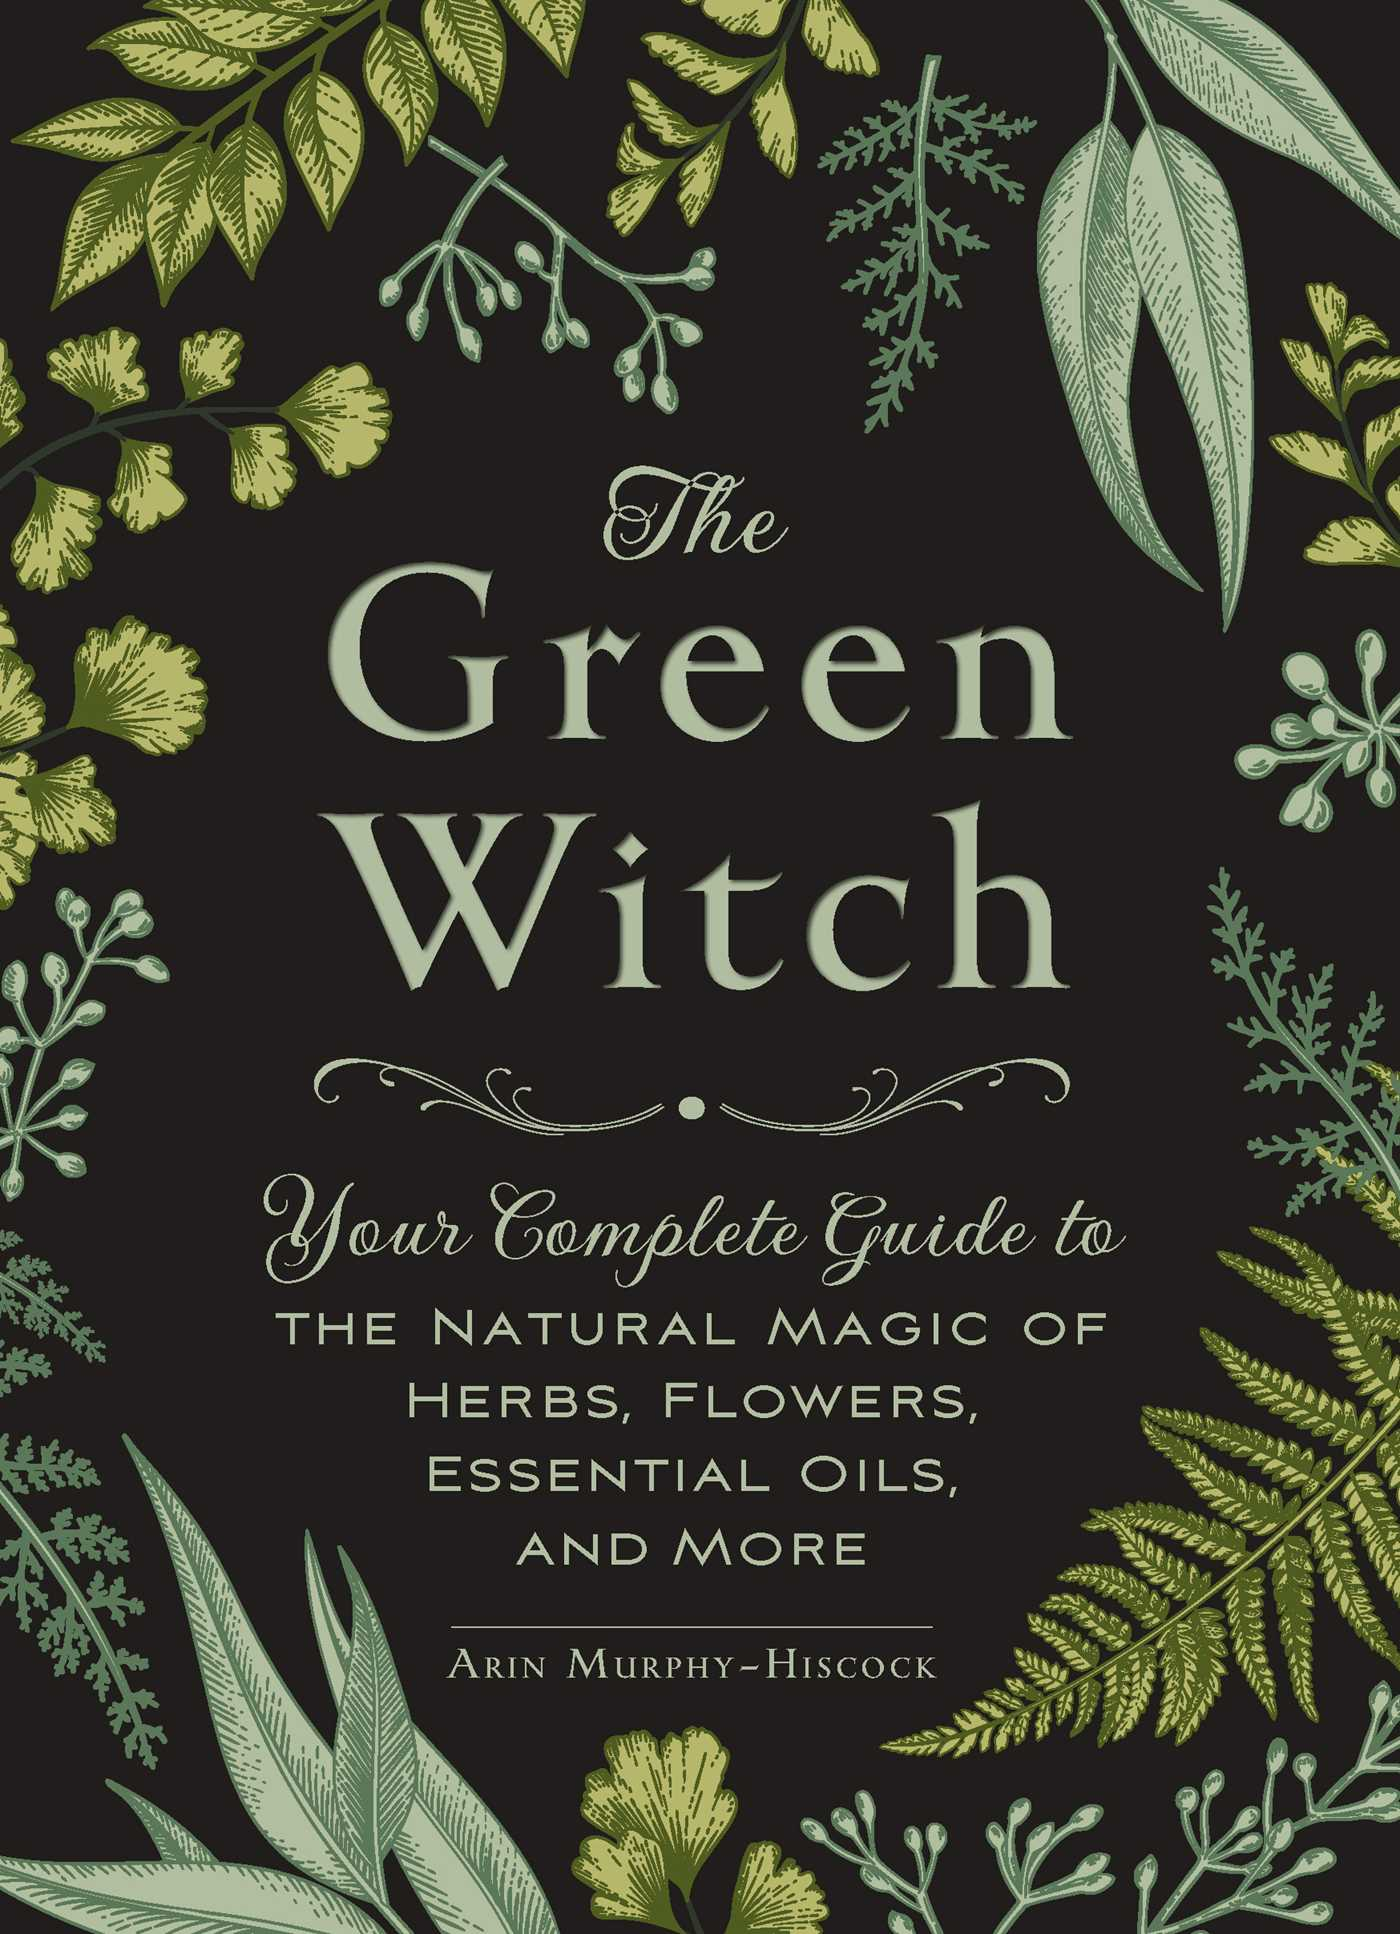 The Green Witch  Book by Arin MurphyHiscock  Official